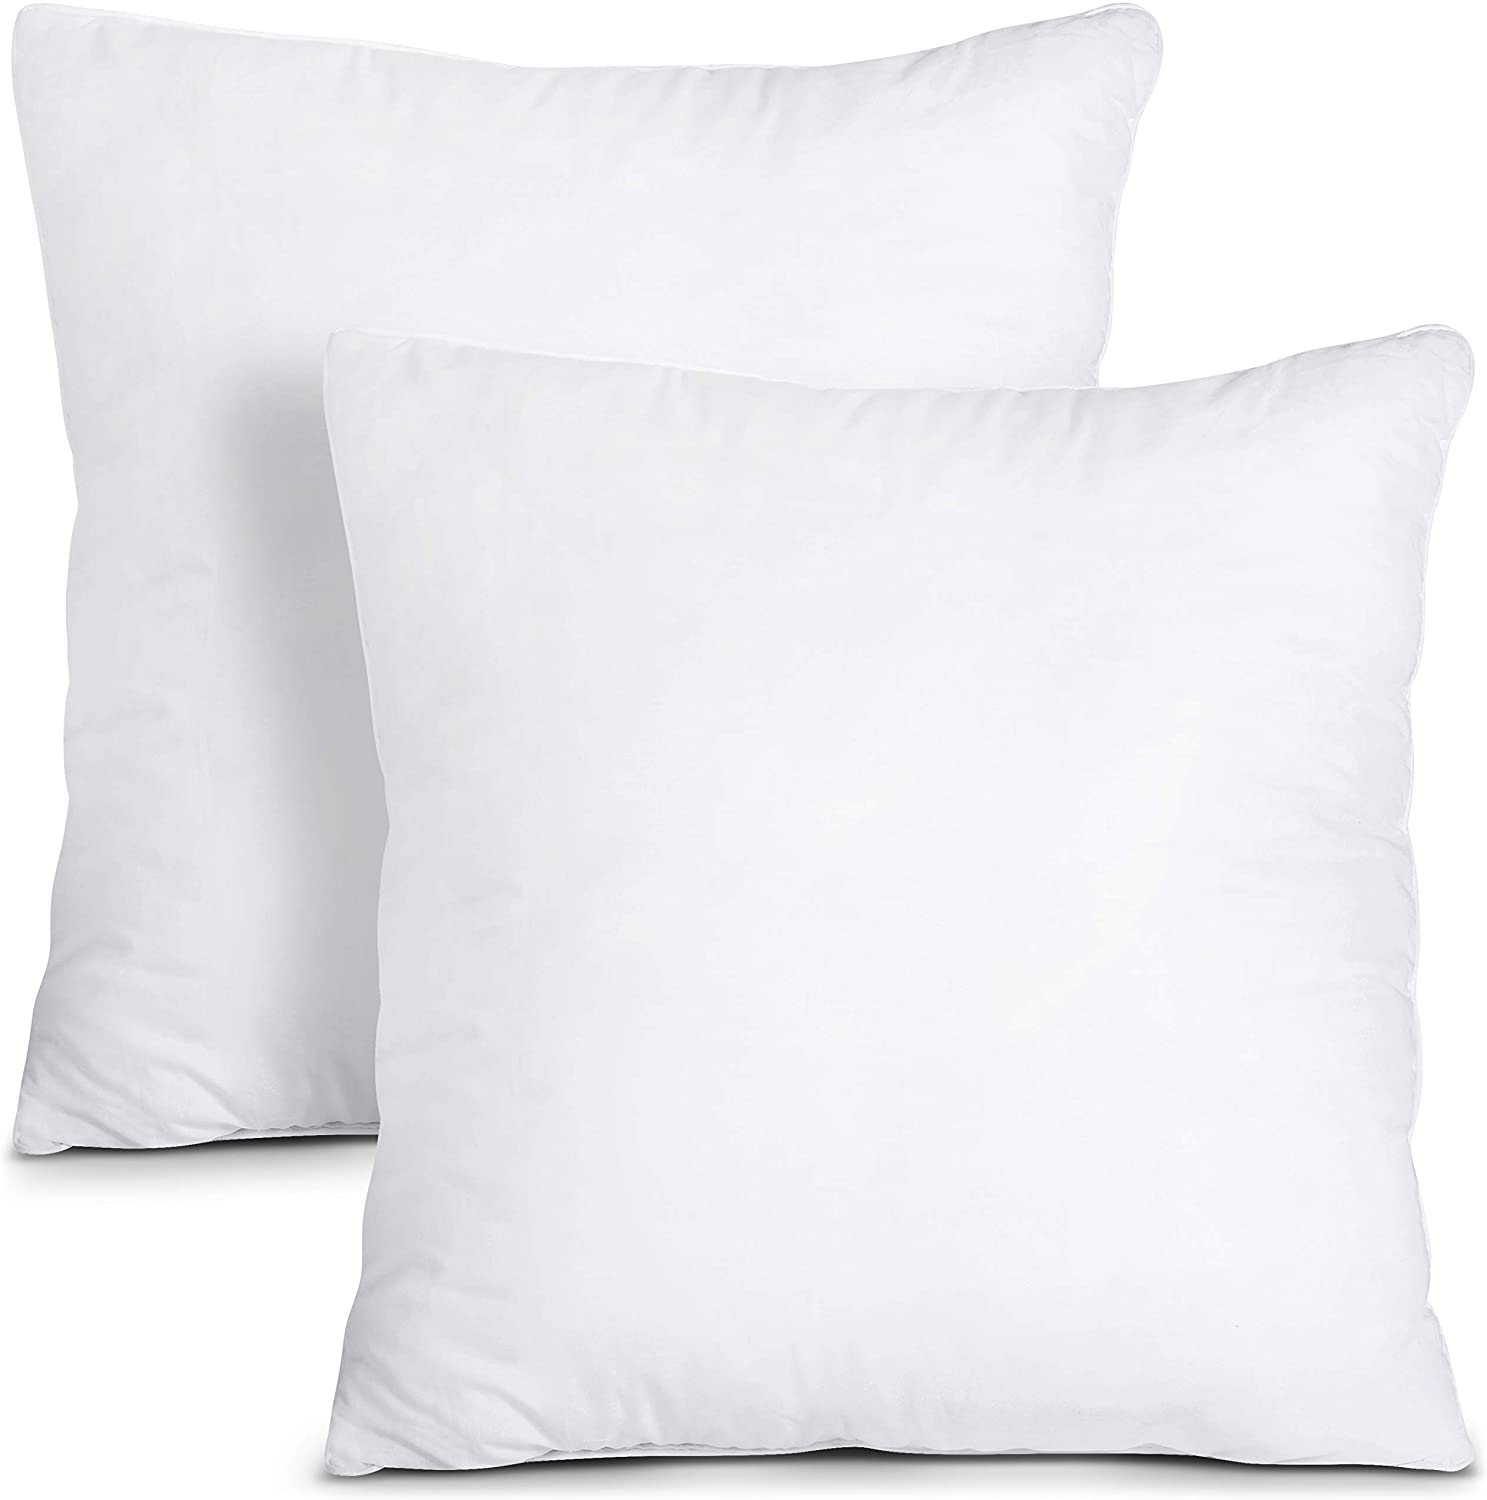 Throw Pillow Insert Pack of 2 White 18 x 18 Inches Bed and Couch Pillows Indoor Decorative Pillows